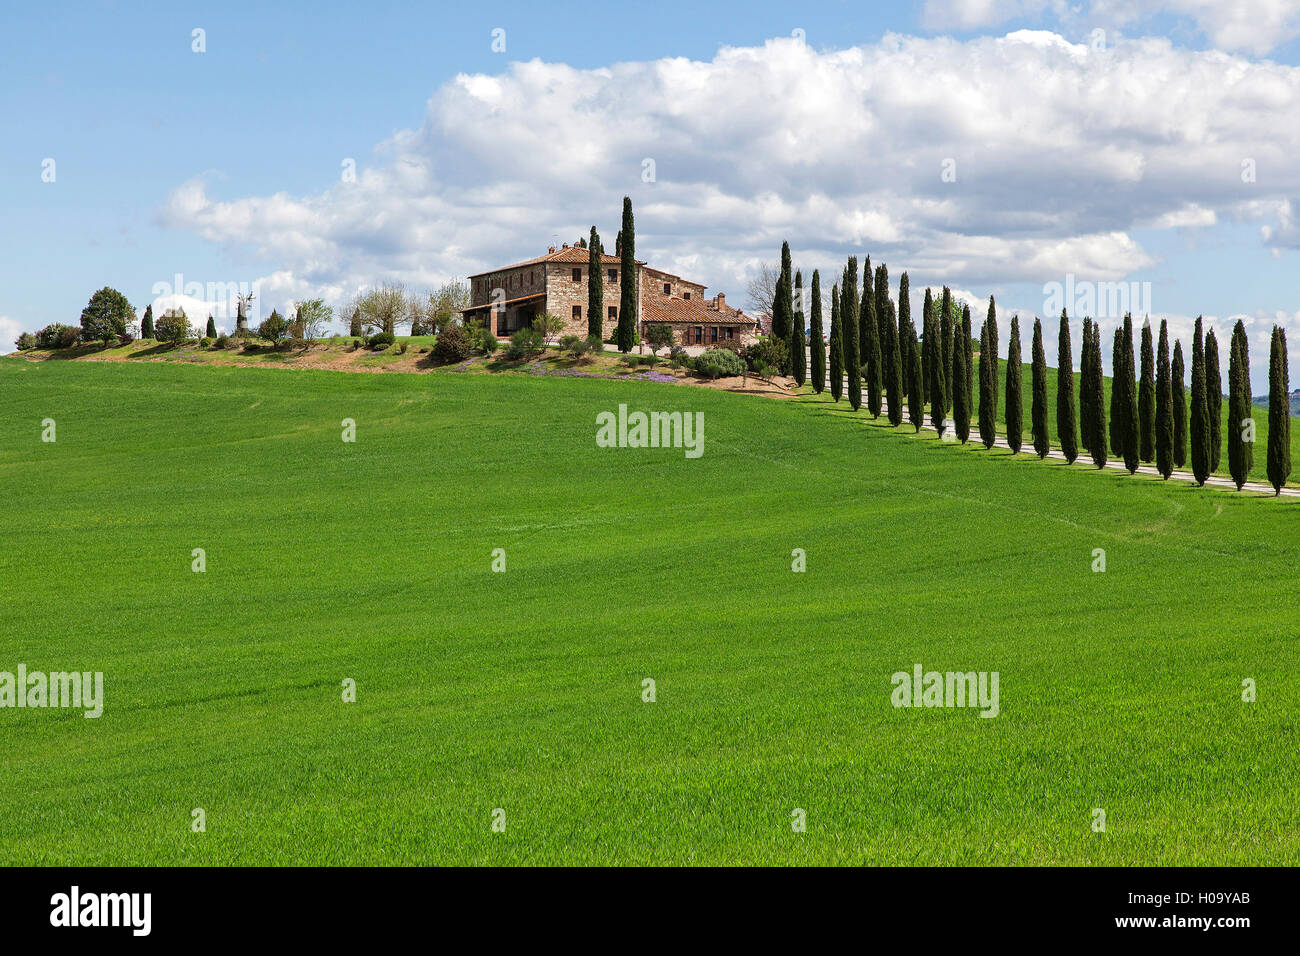 Country estate with cypresses, near San Quirico d'Orcia, Val d'Orcia, Tuscany, Italy - Stock Image